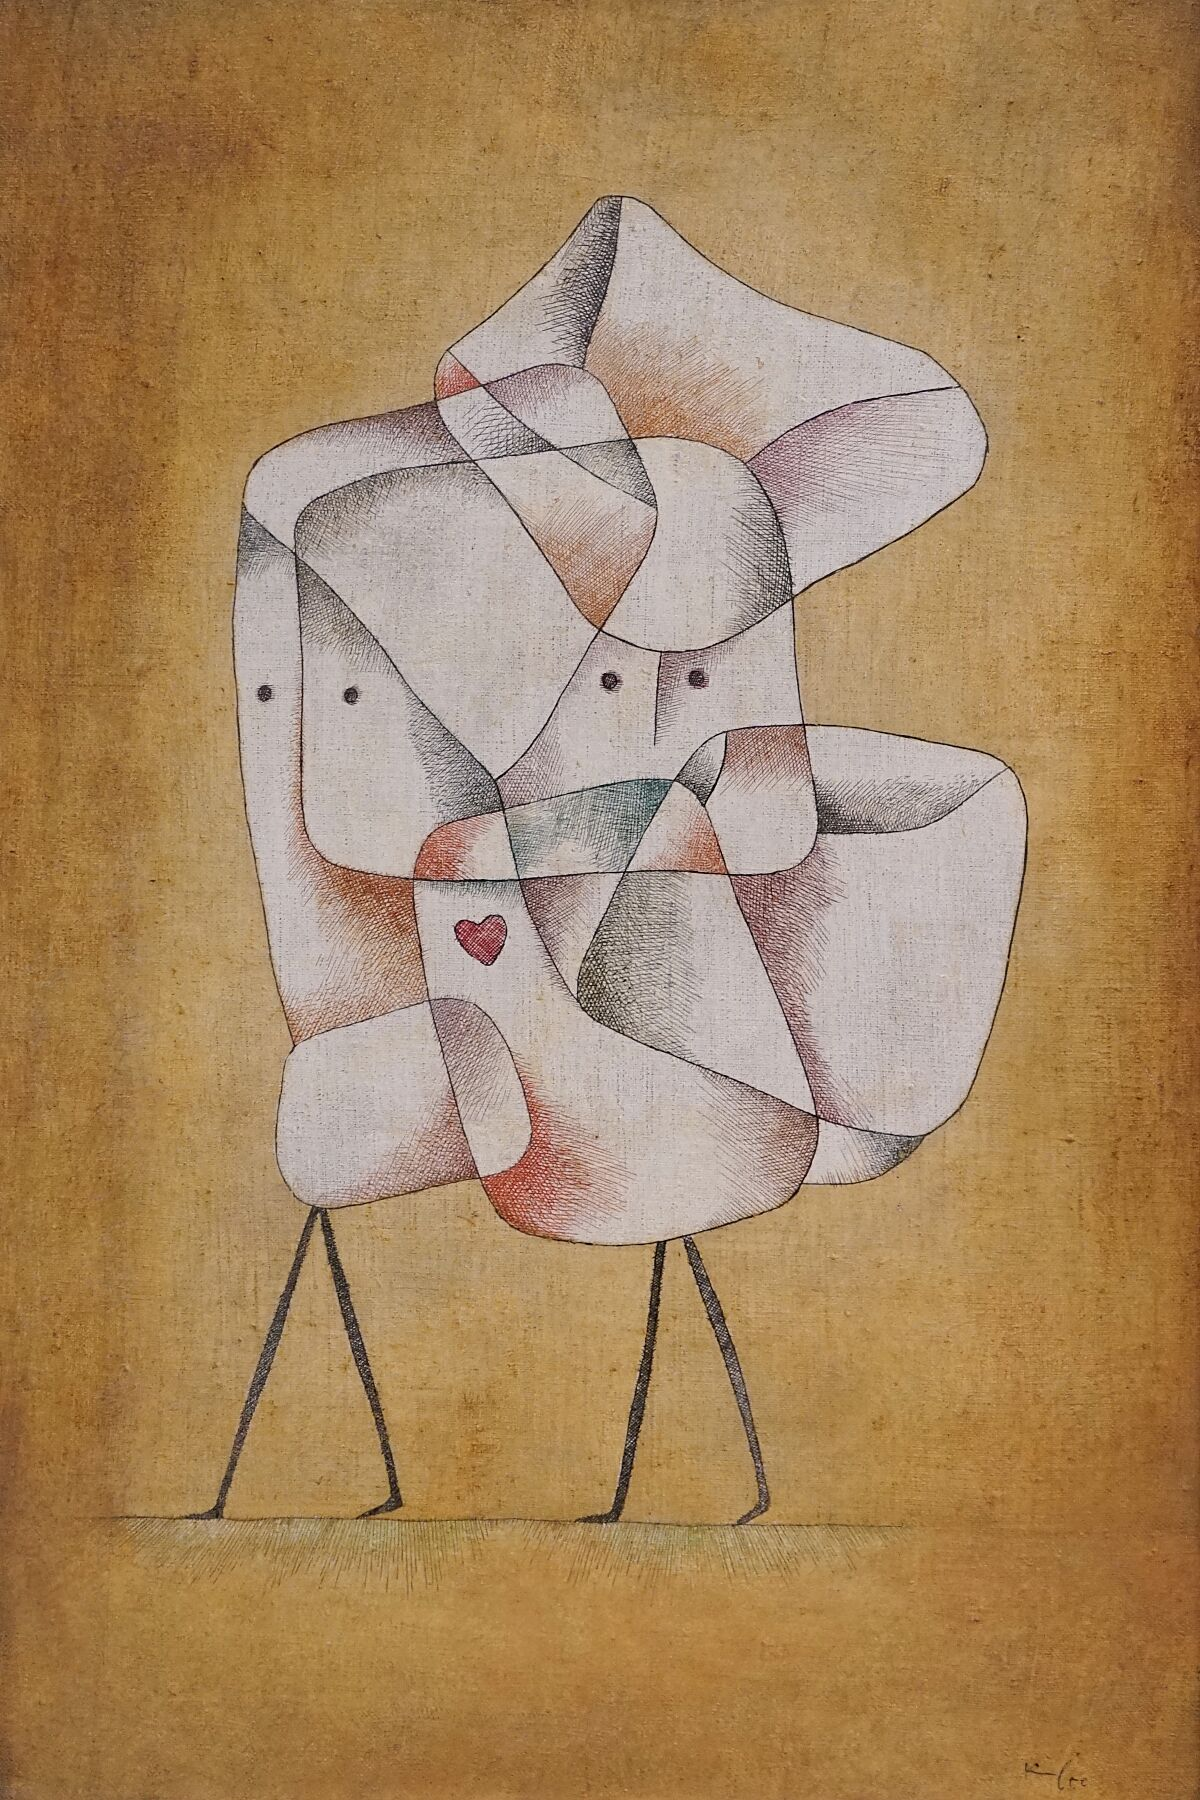 Siblings by Paul_Klee - 1930